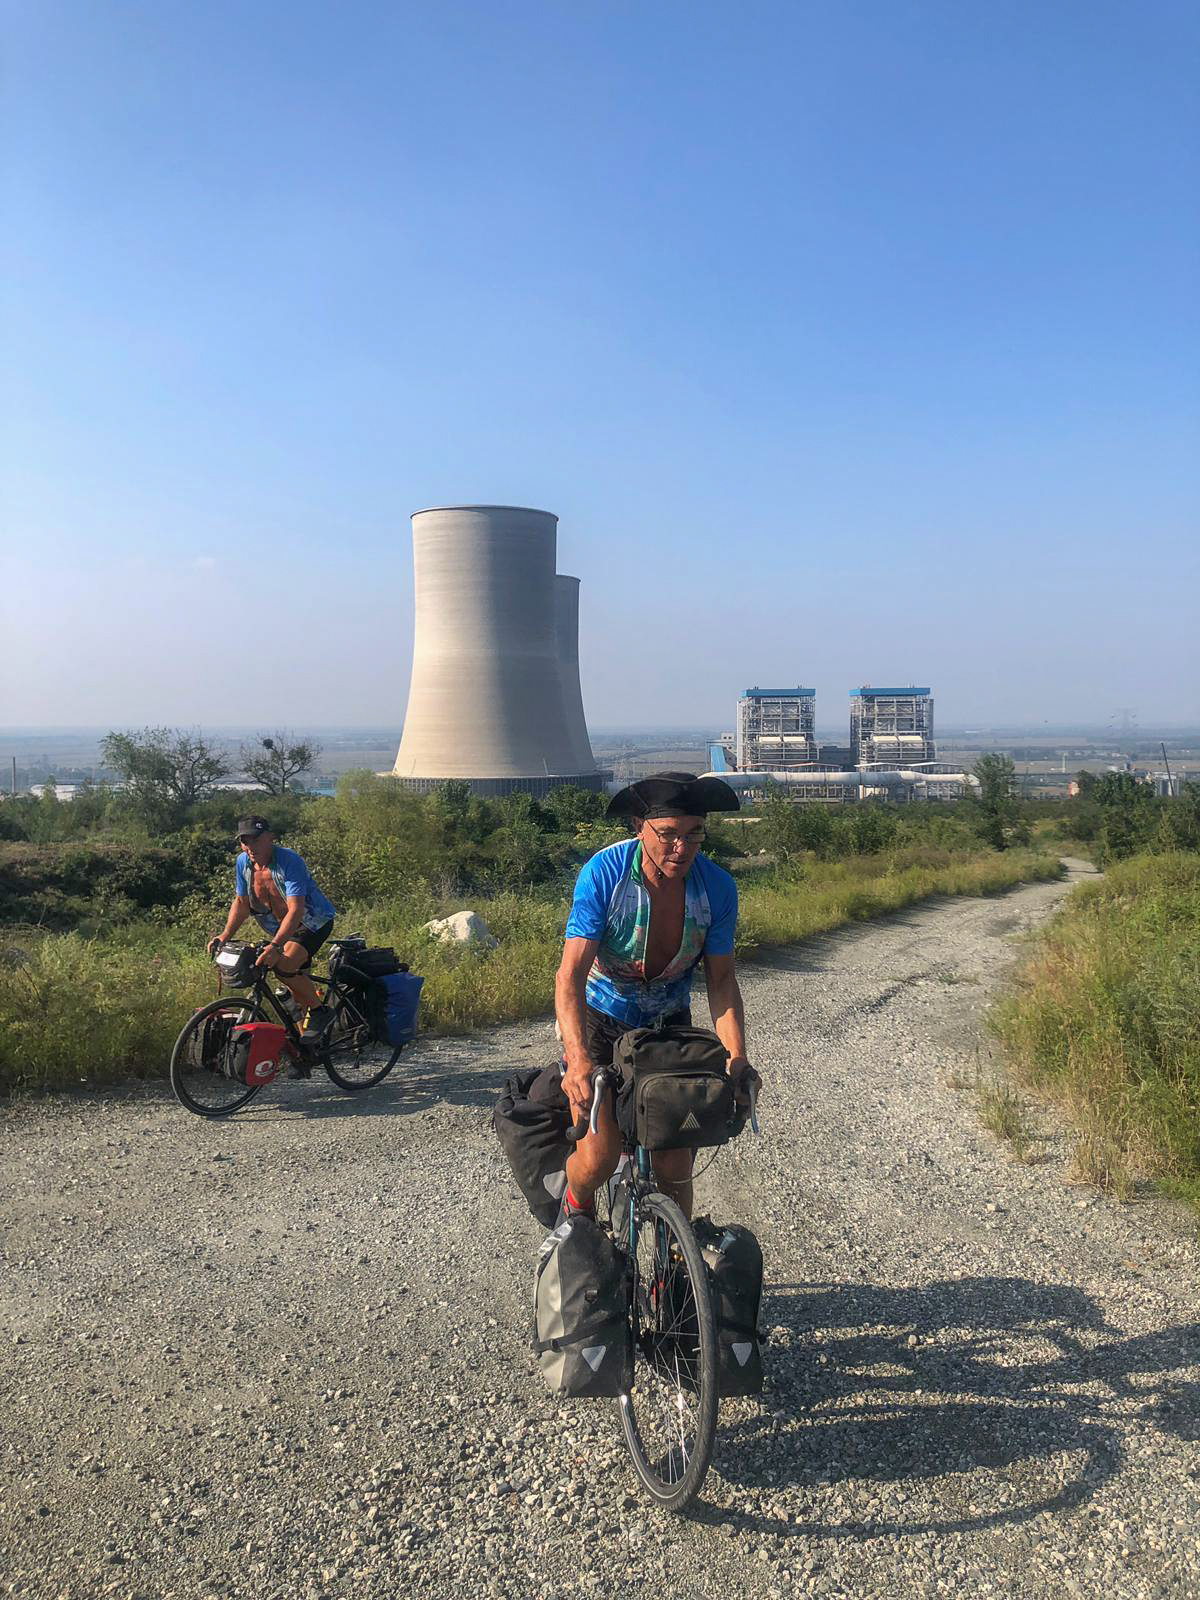 Cycling an old track besides an old Power Station